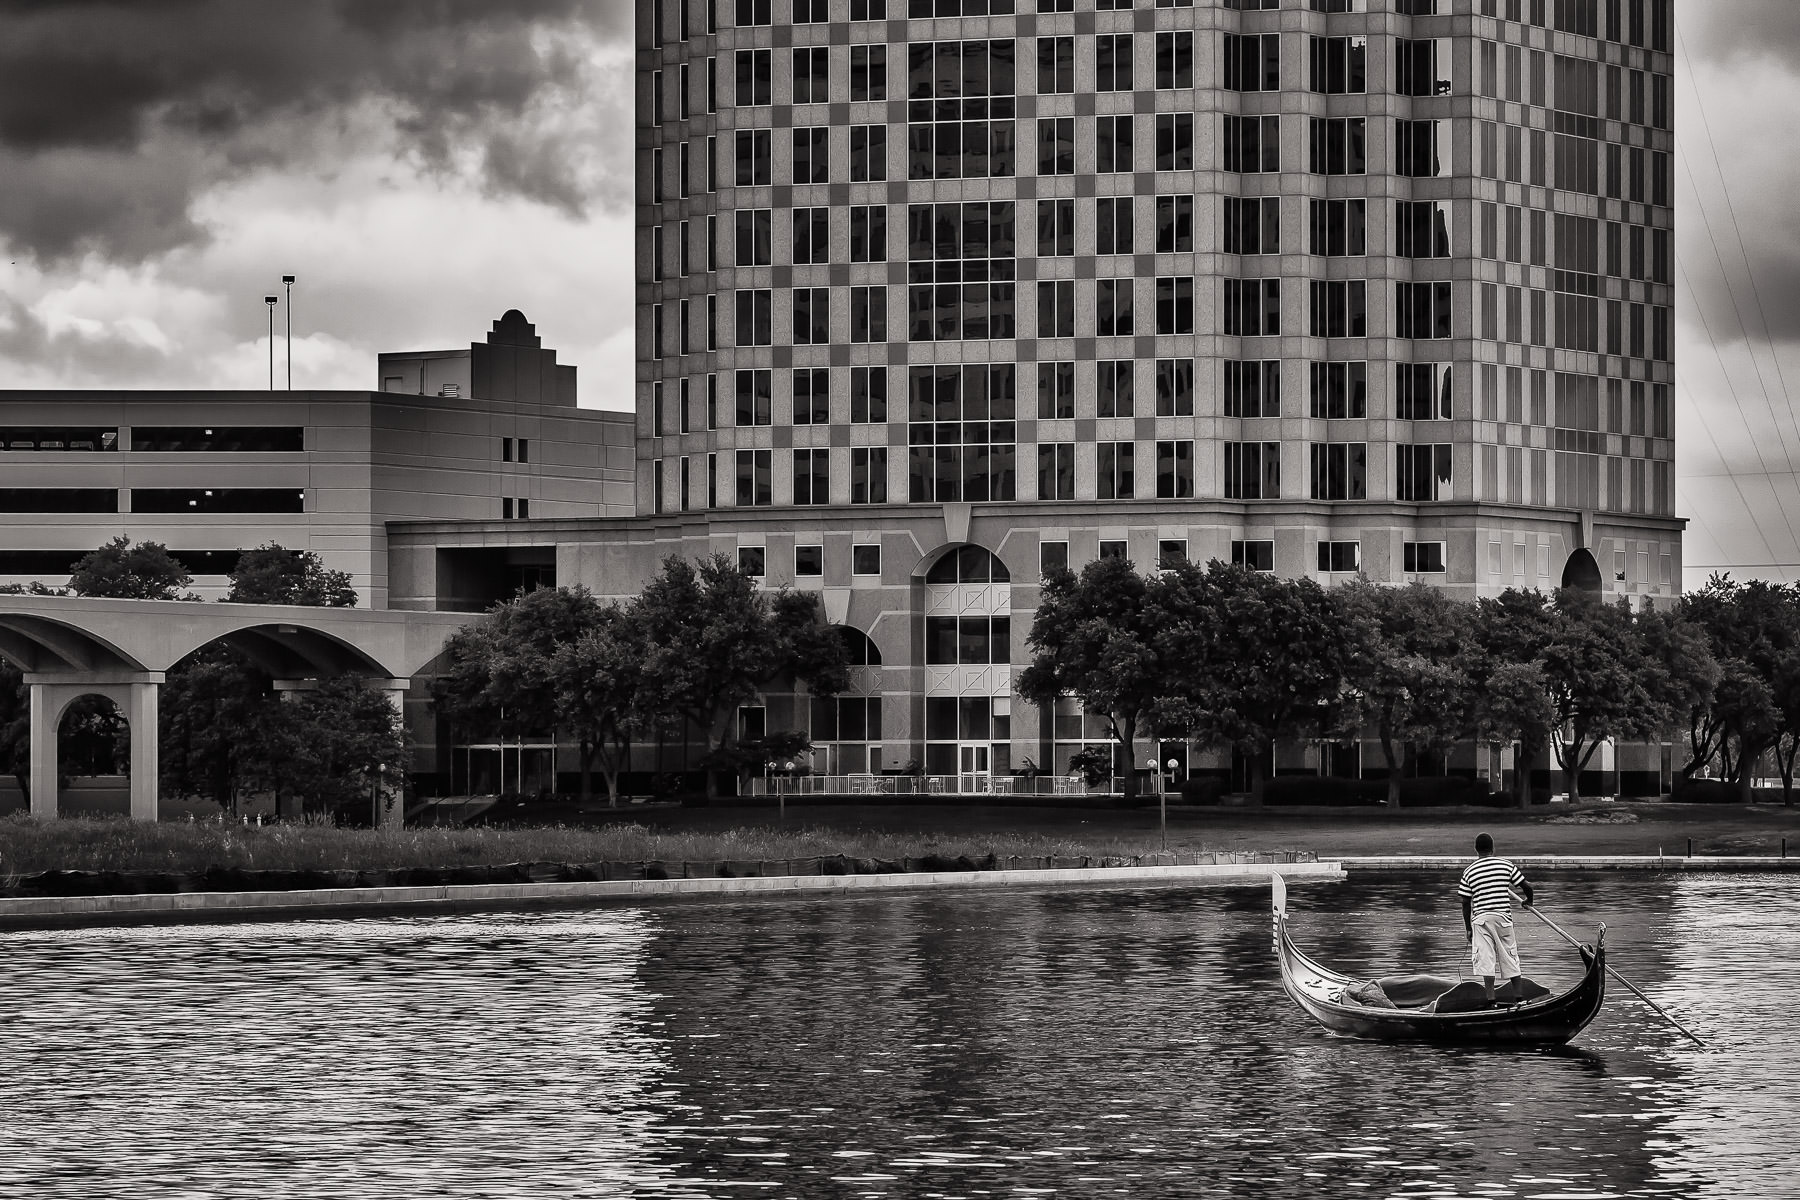 A gondolier maneuvers his boat over Lake Carolyn in Las Colinas, Irving, Texas.